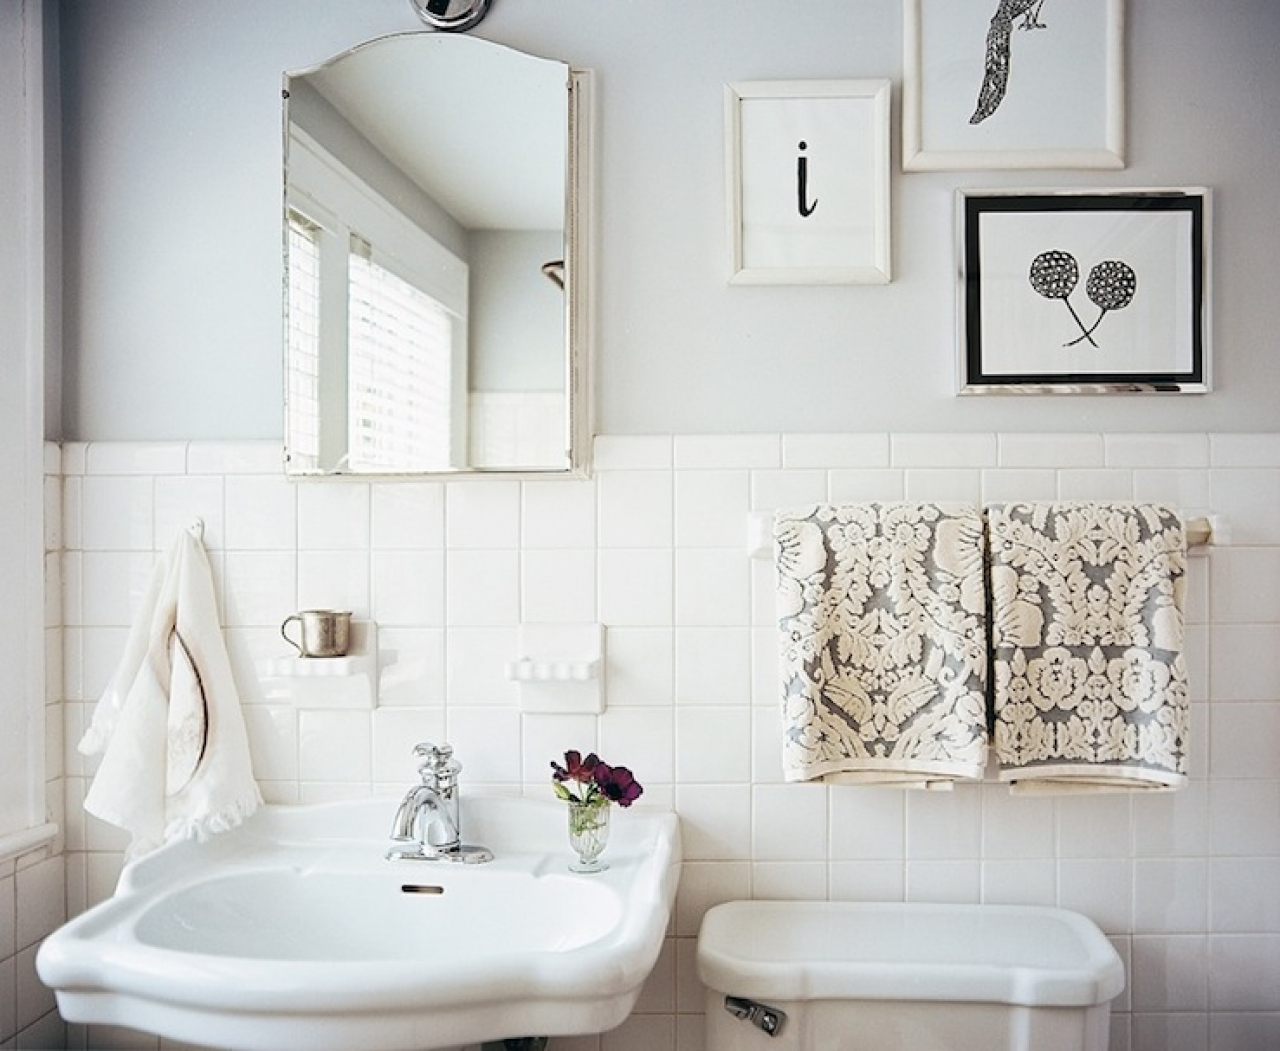 33 amazing pictures and ideas of old fashioned bathroom for Retro bathroom designs